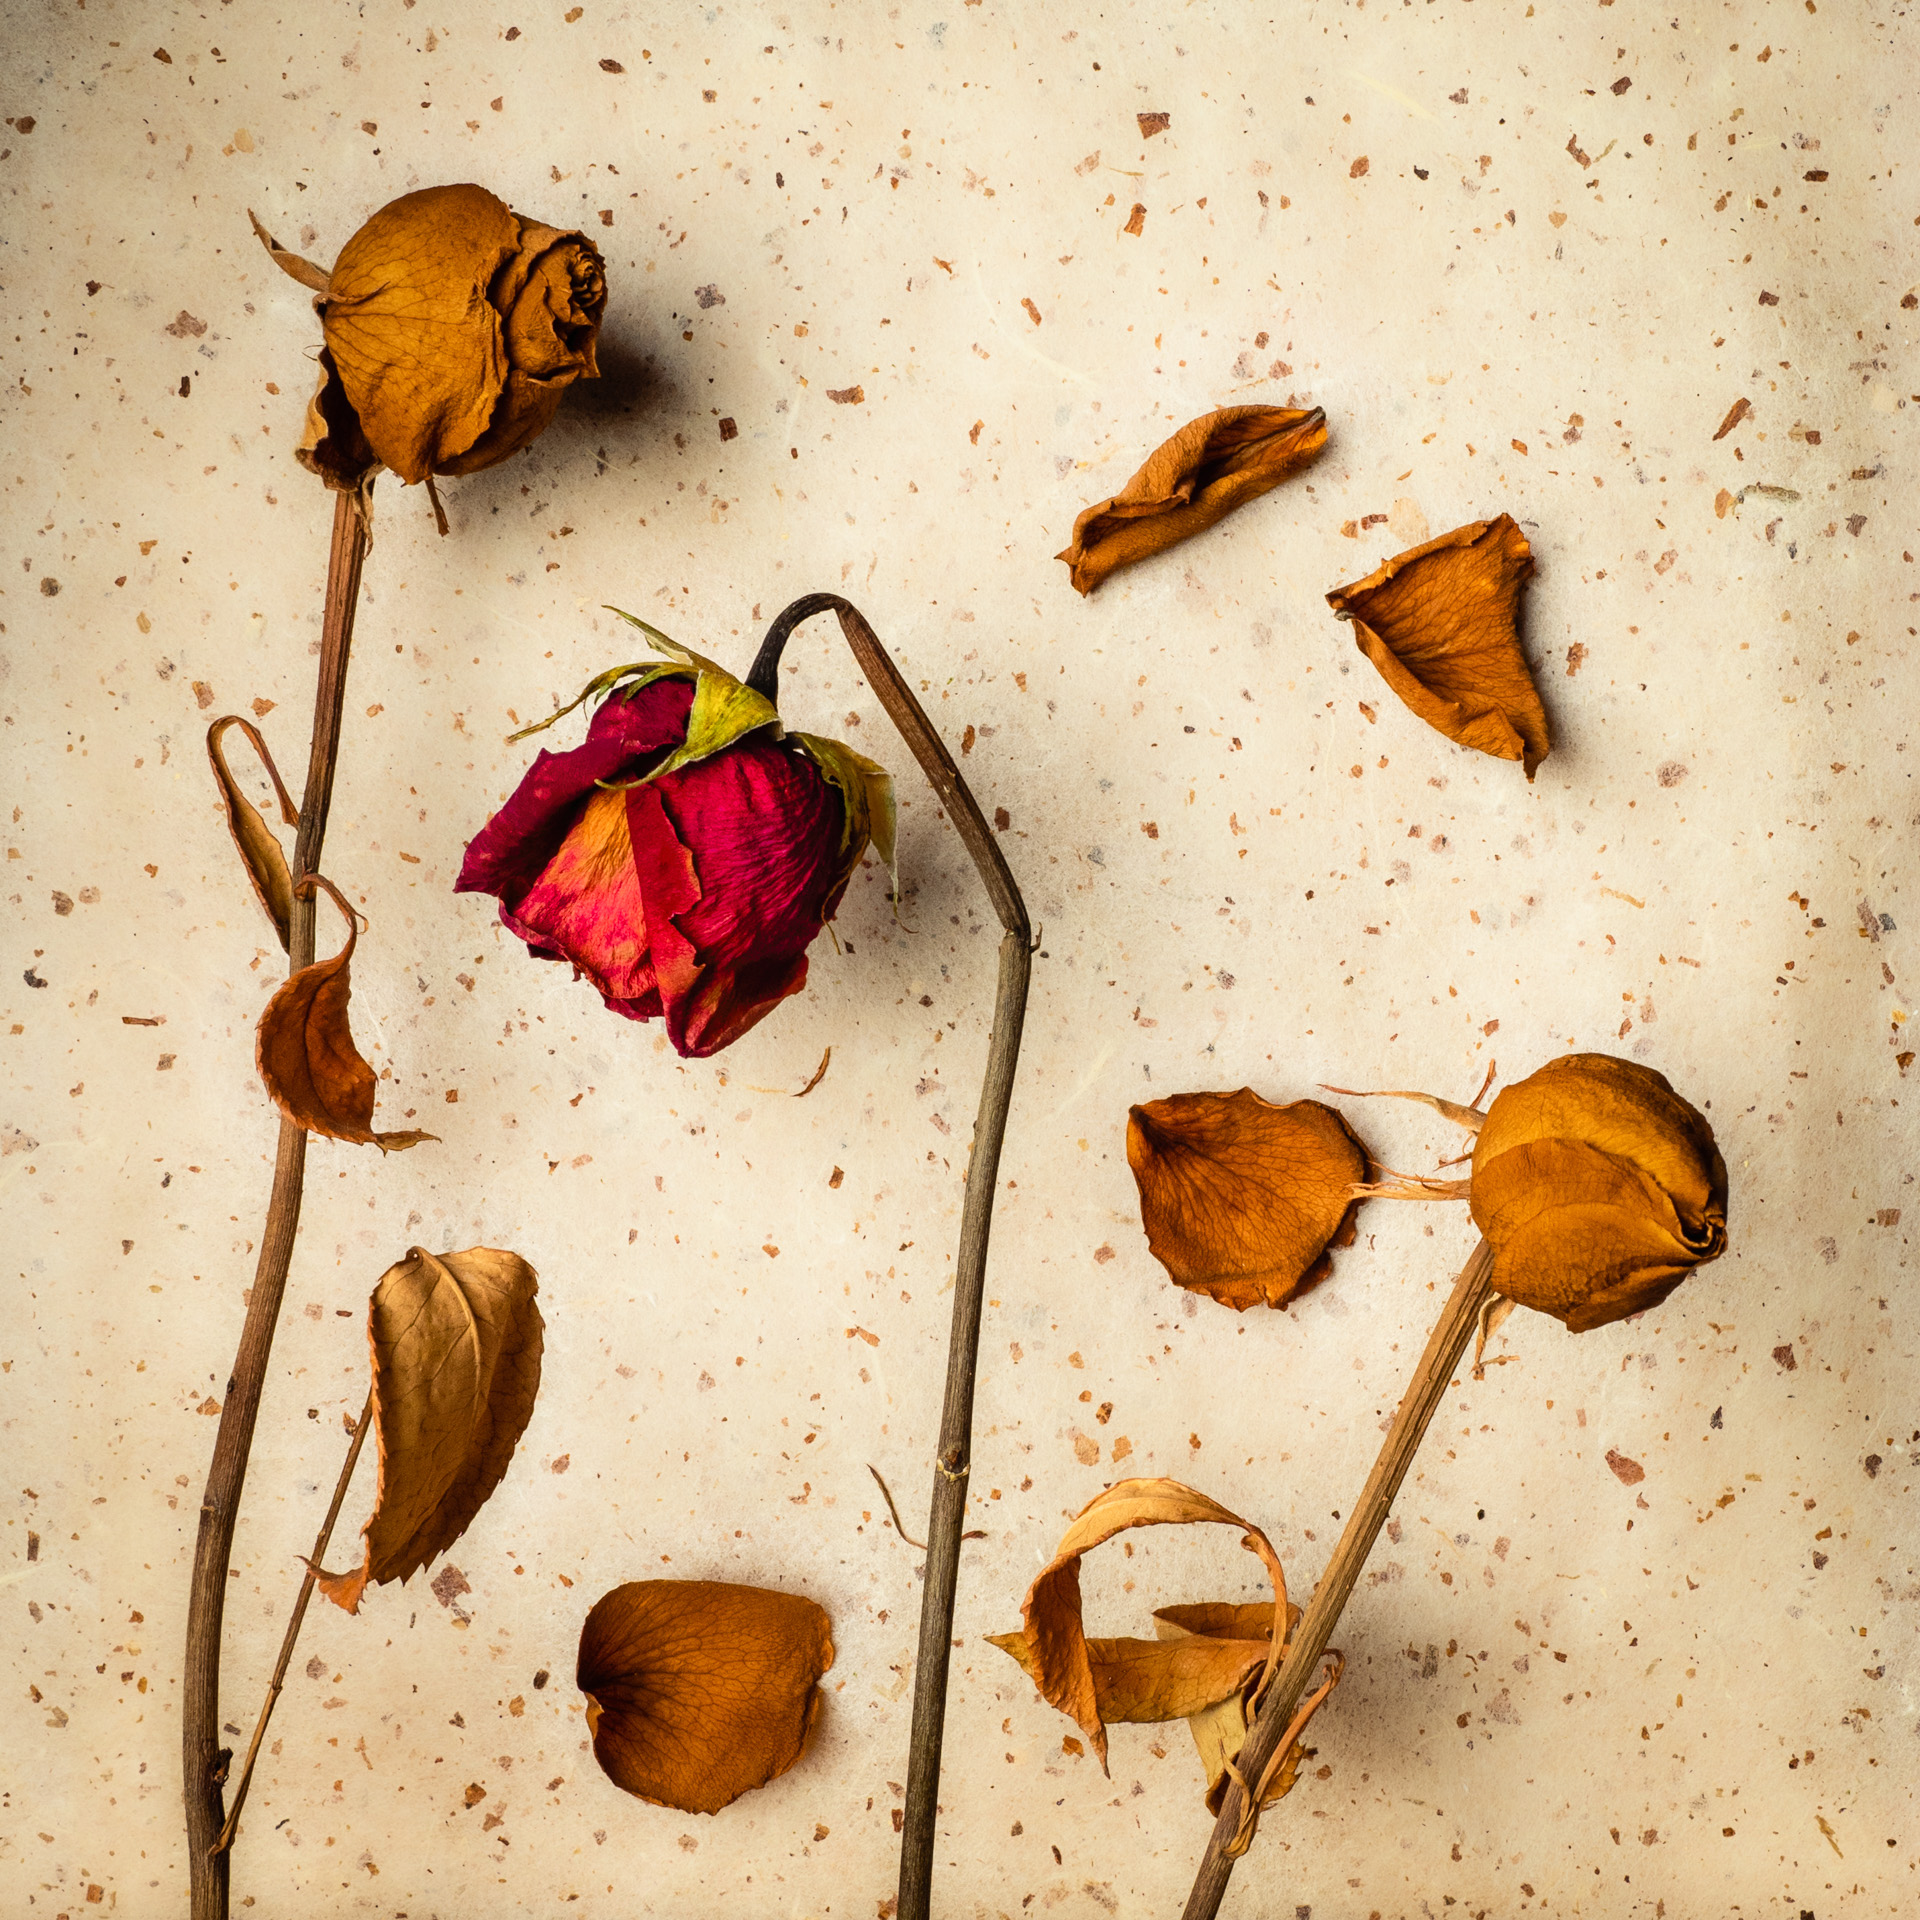 Rose Buds, Withered Beauties, dried rosebuds on a rice paper background